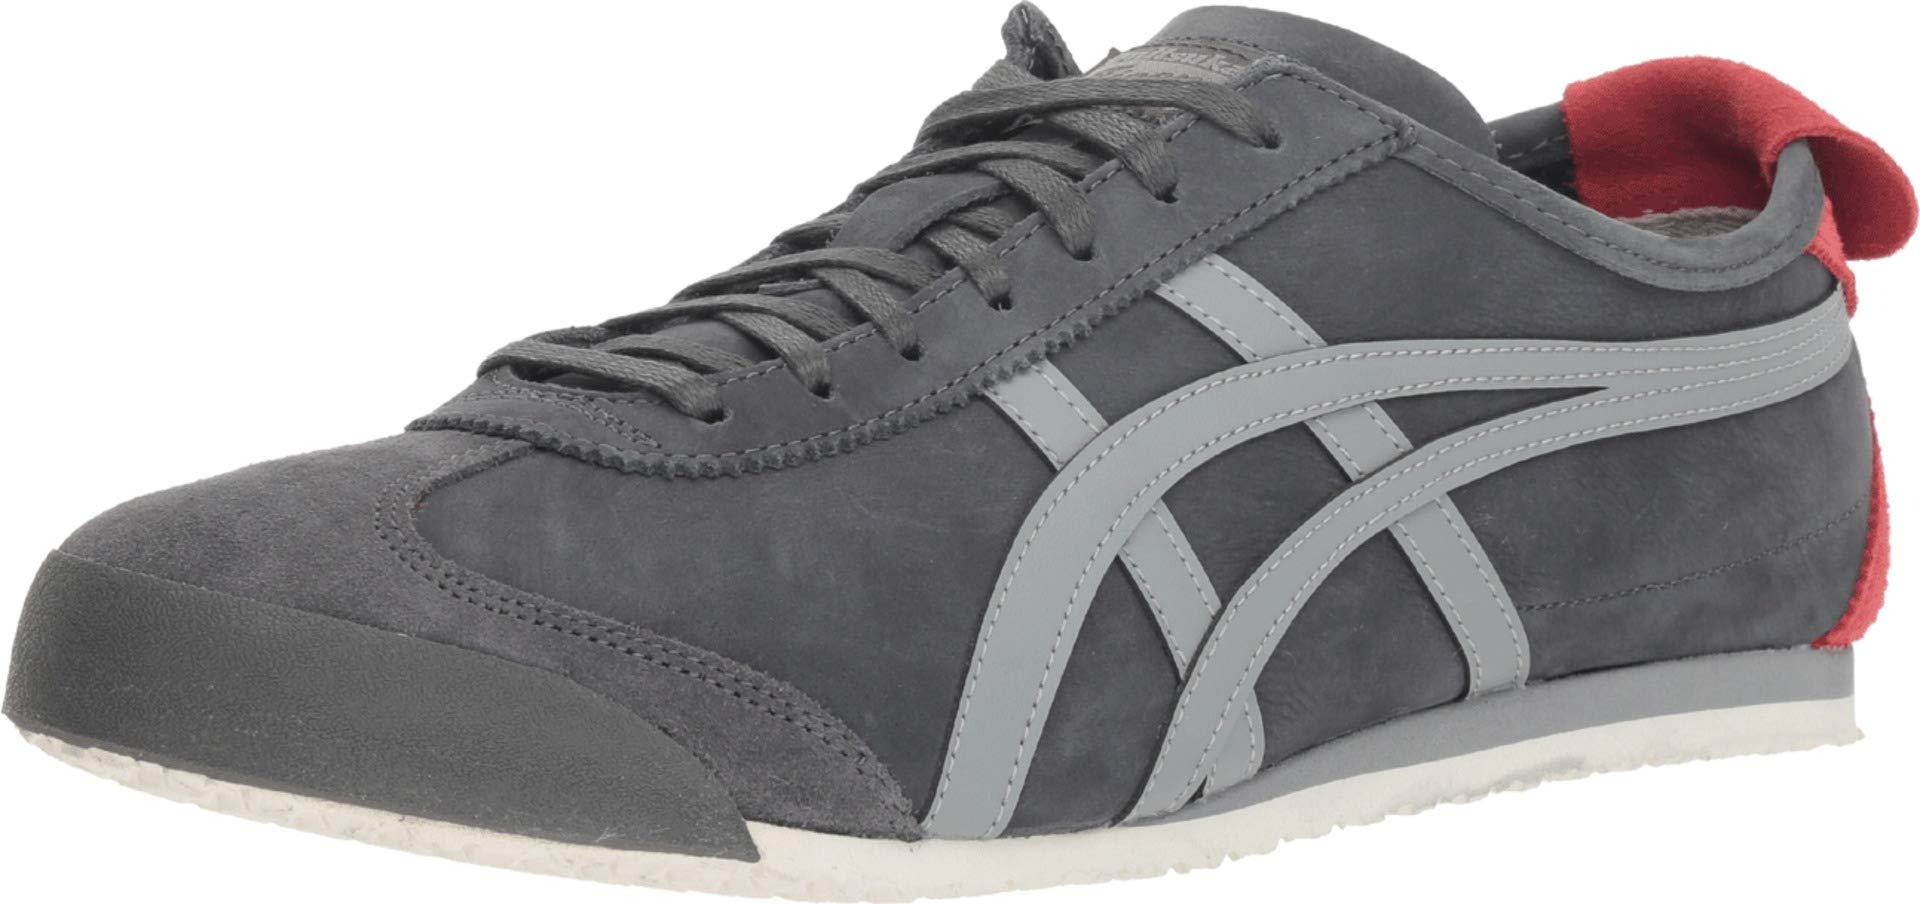 onitsuka tiger mexico 66 shoes review philippines blue yeti